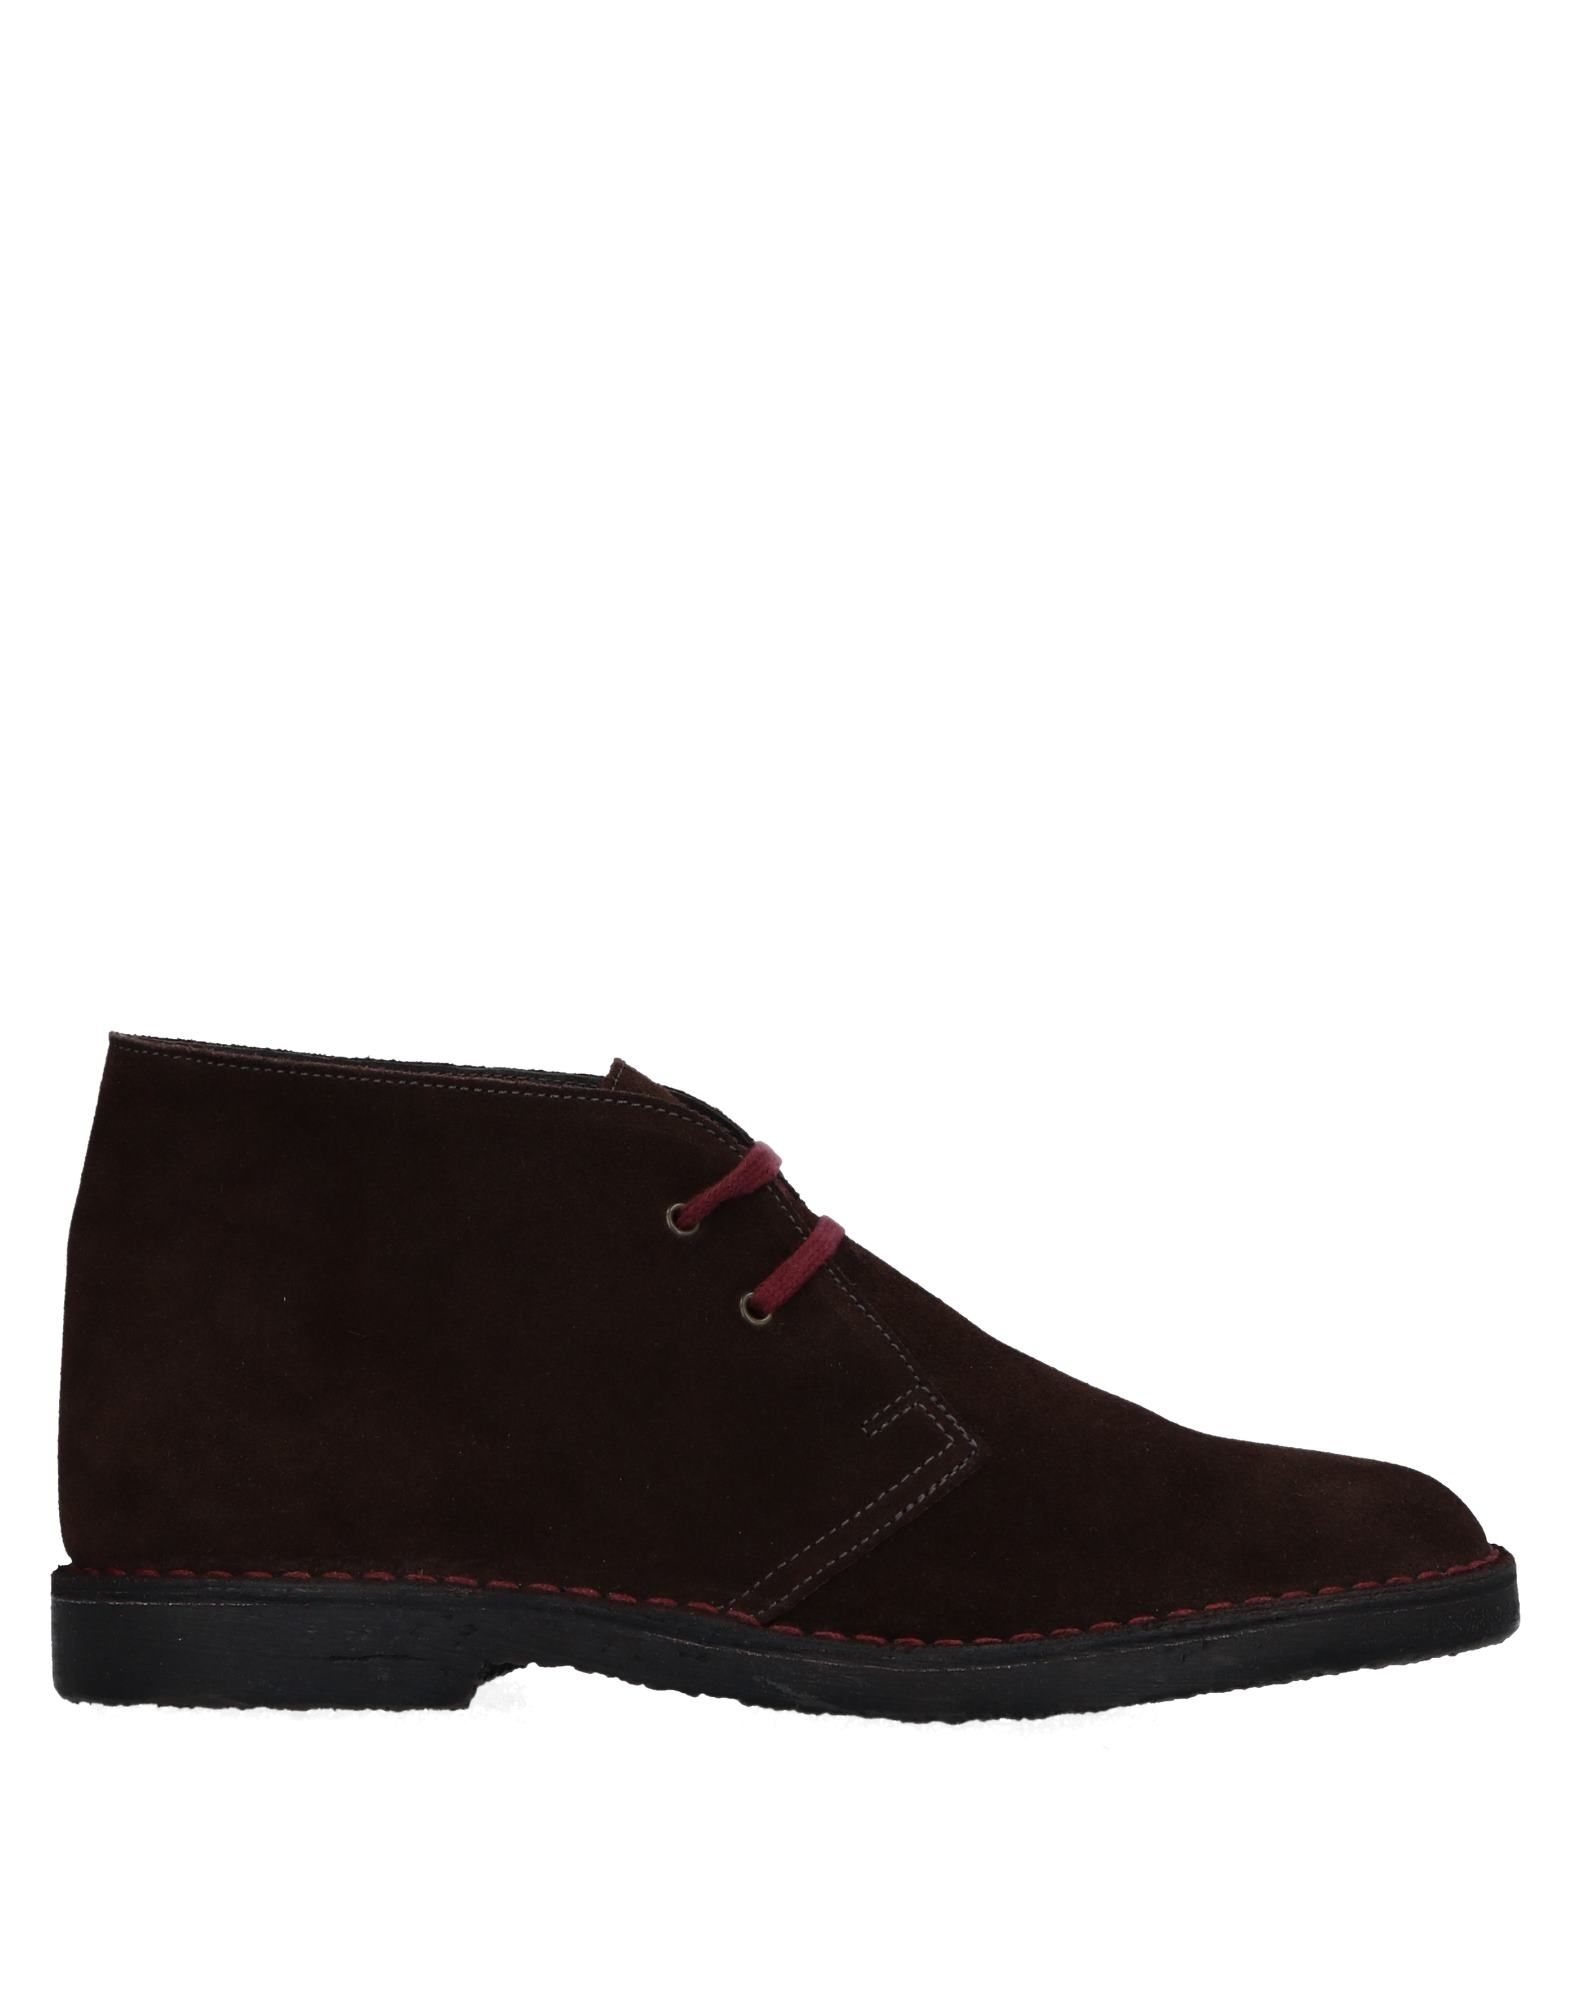 Anderson Boots - Canada Men Anderson Boots online on  Canada - - 11240322PH 8d63ed